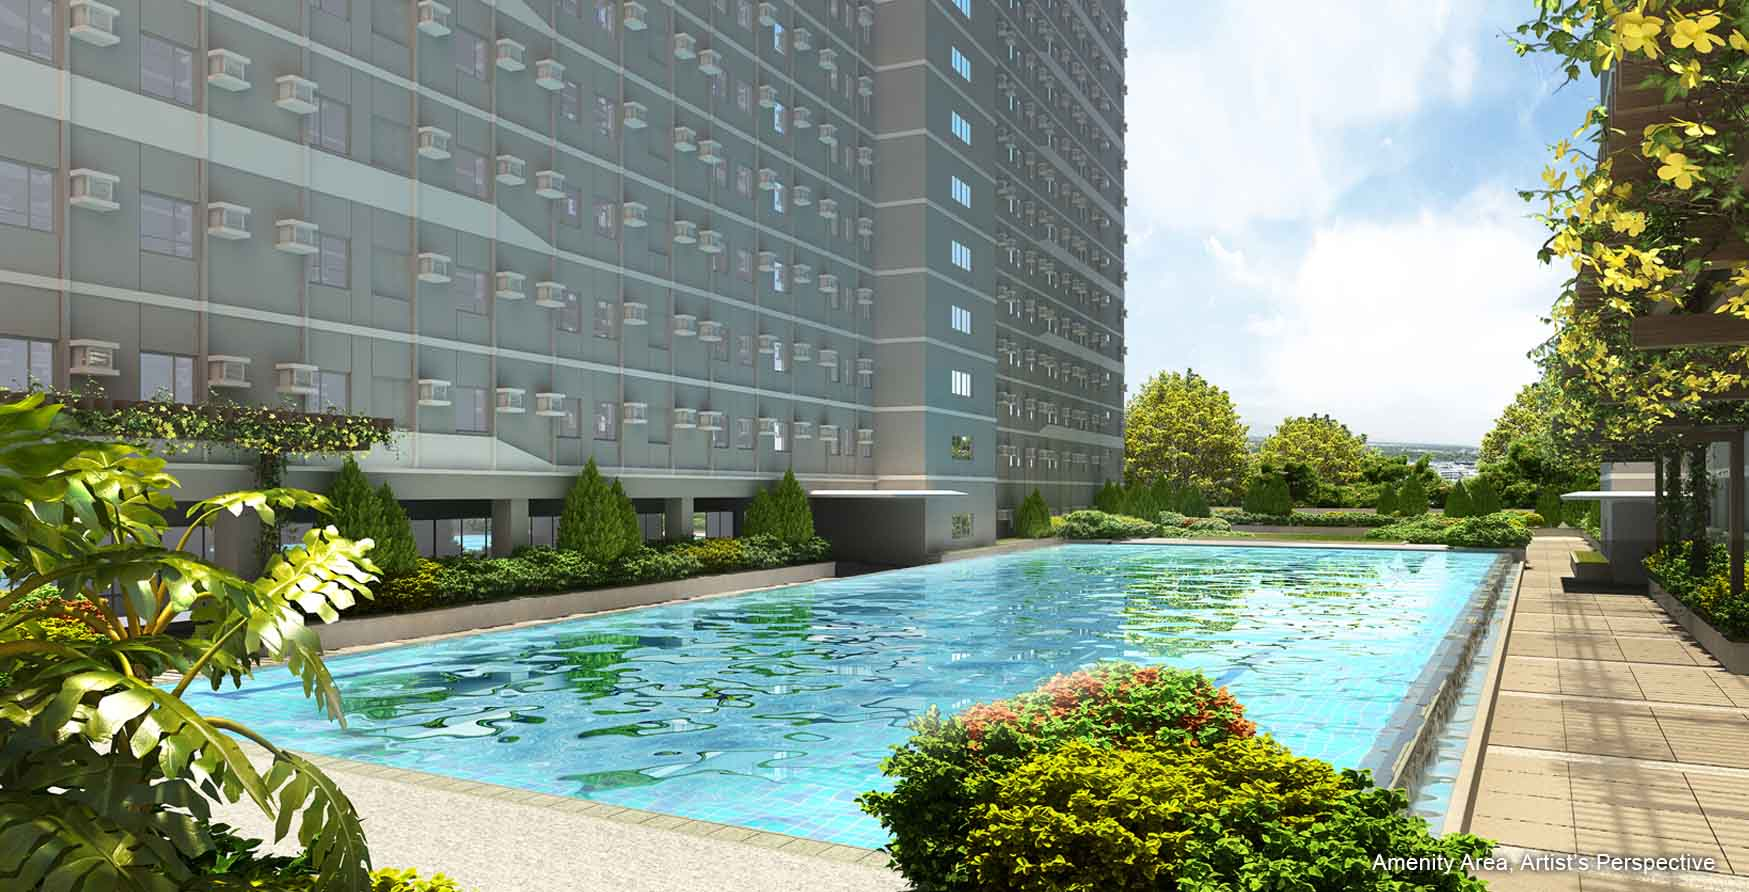 New Normal: Getting the best university life starts at Green 2 Residences